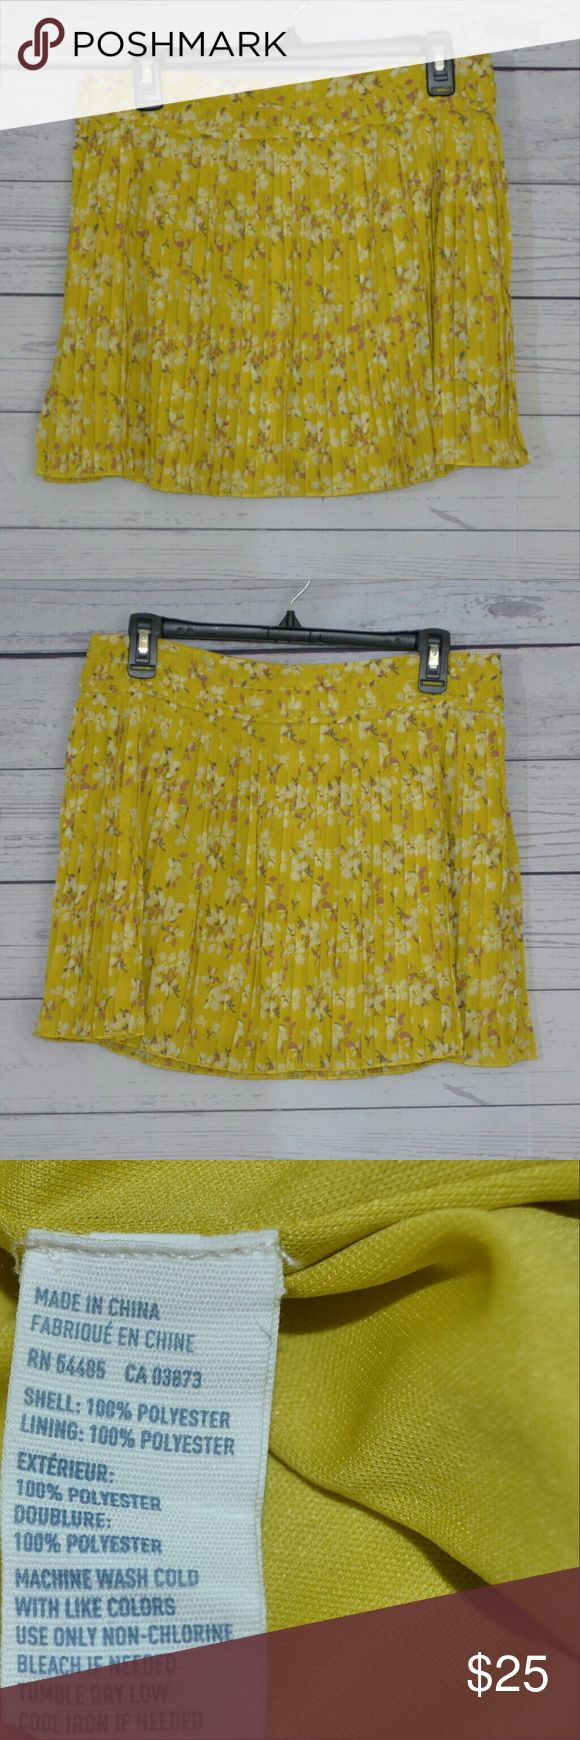 American eagle outfitters yellow floral size 8 Pre loved American eagle outfitters yellow pleated skirt size 8 American Eagle Outfitters Skirts Mini